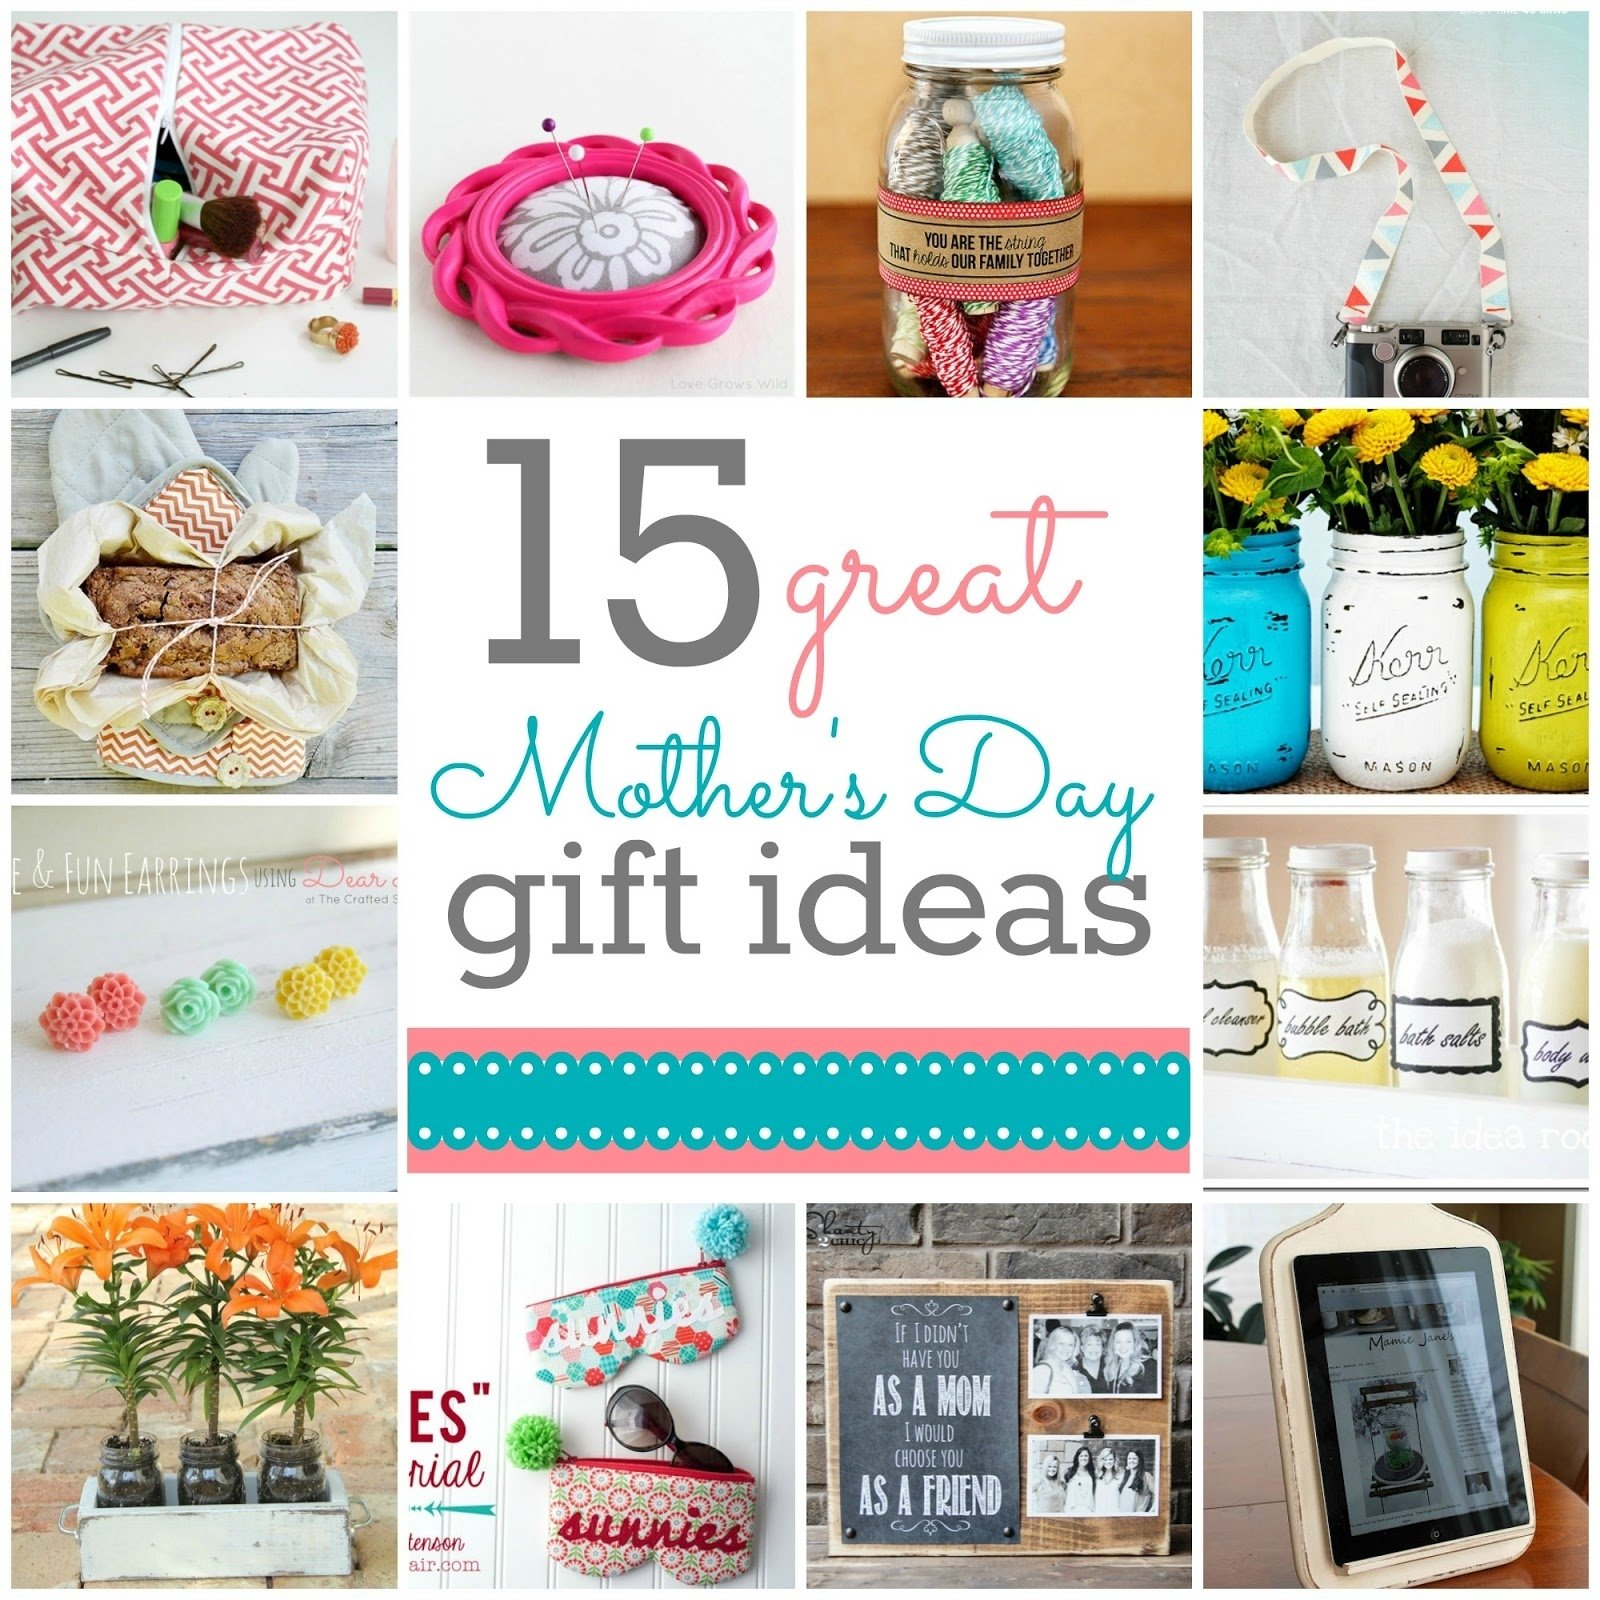 mother's day gift ideas + an epic giveaway - the crafted sparrow